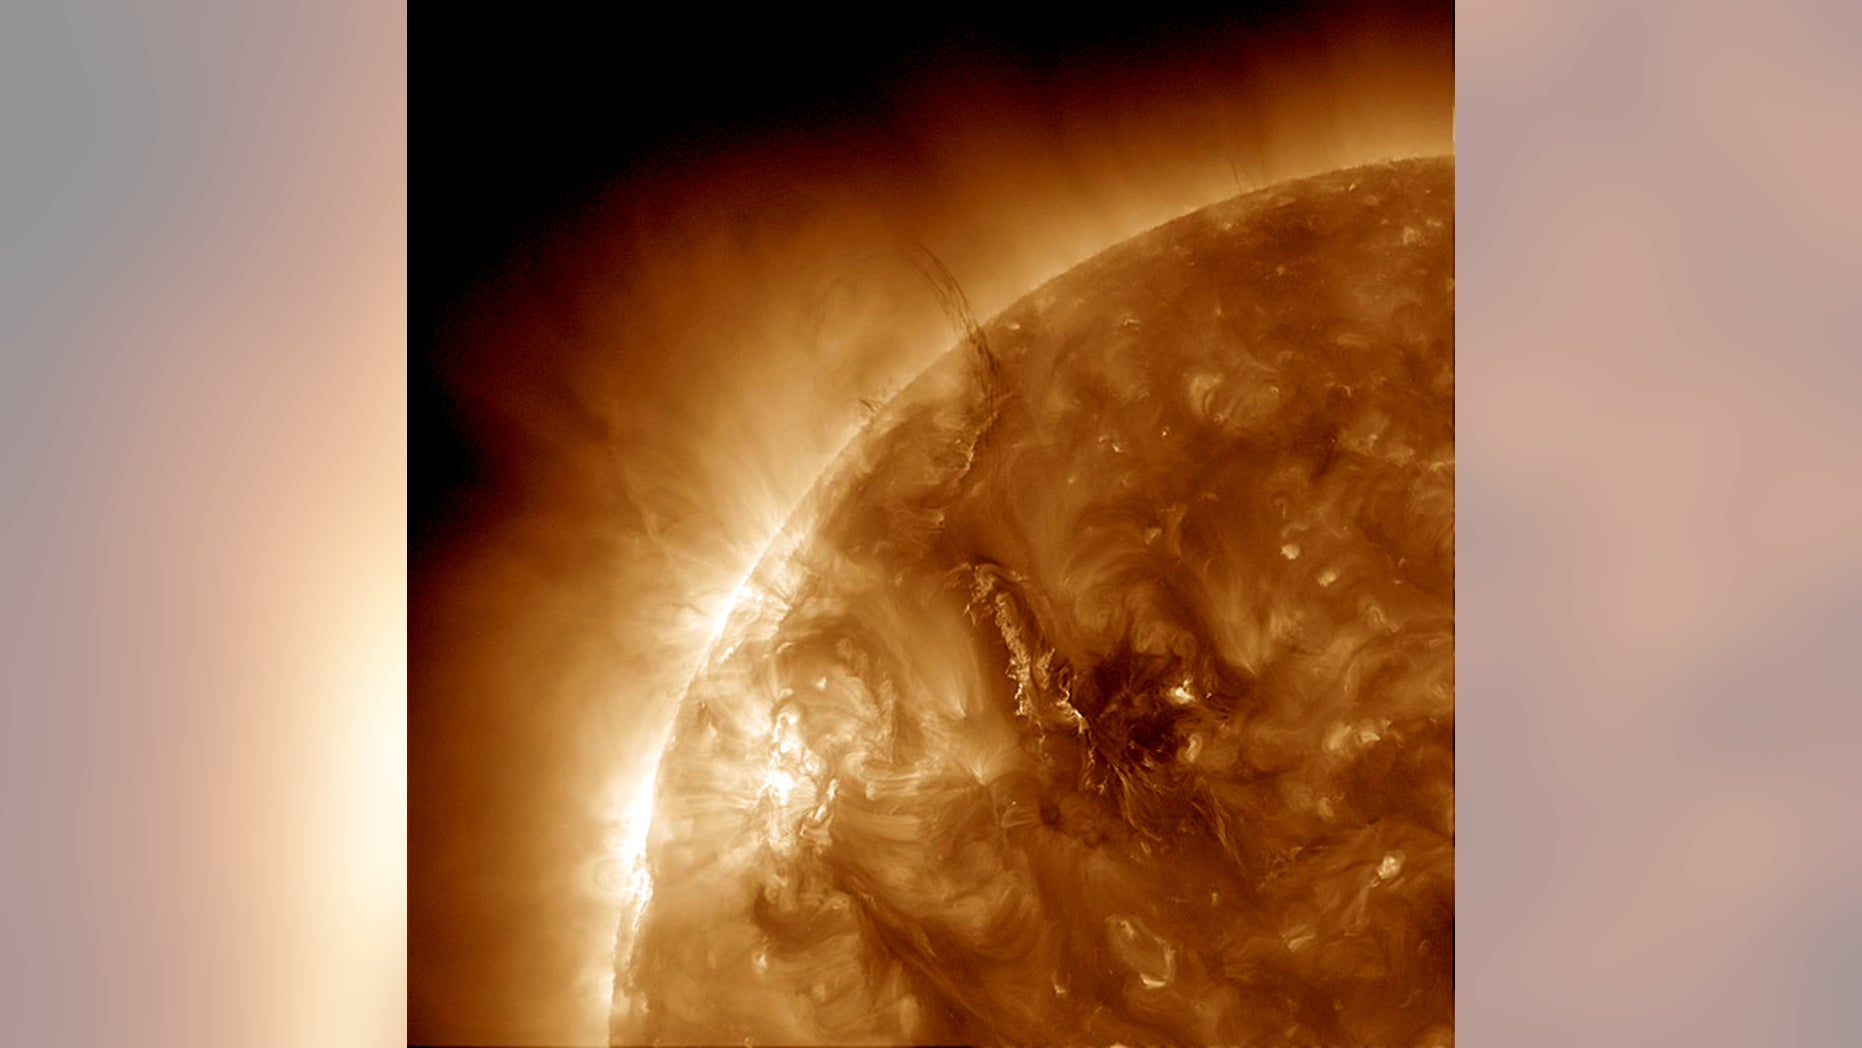 Disruption to the magnetic fields generates the coiling and spreading wave-like action on the surface of the sun seen here. Sound waves created within the sun can reveal information about the magnetic activity that causes such prominences.